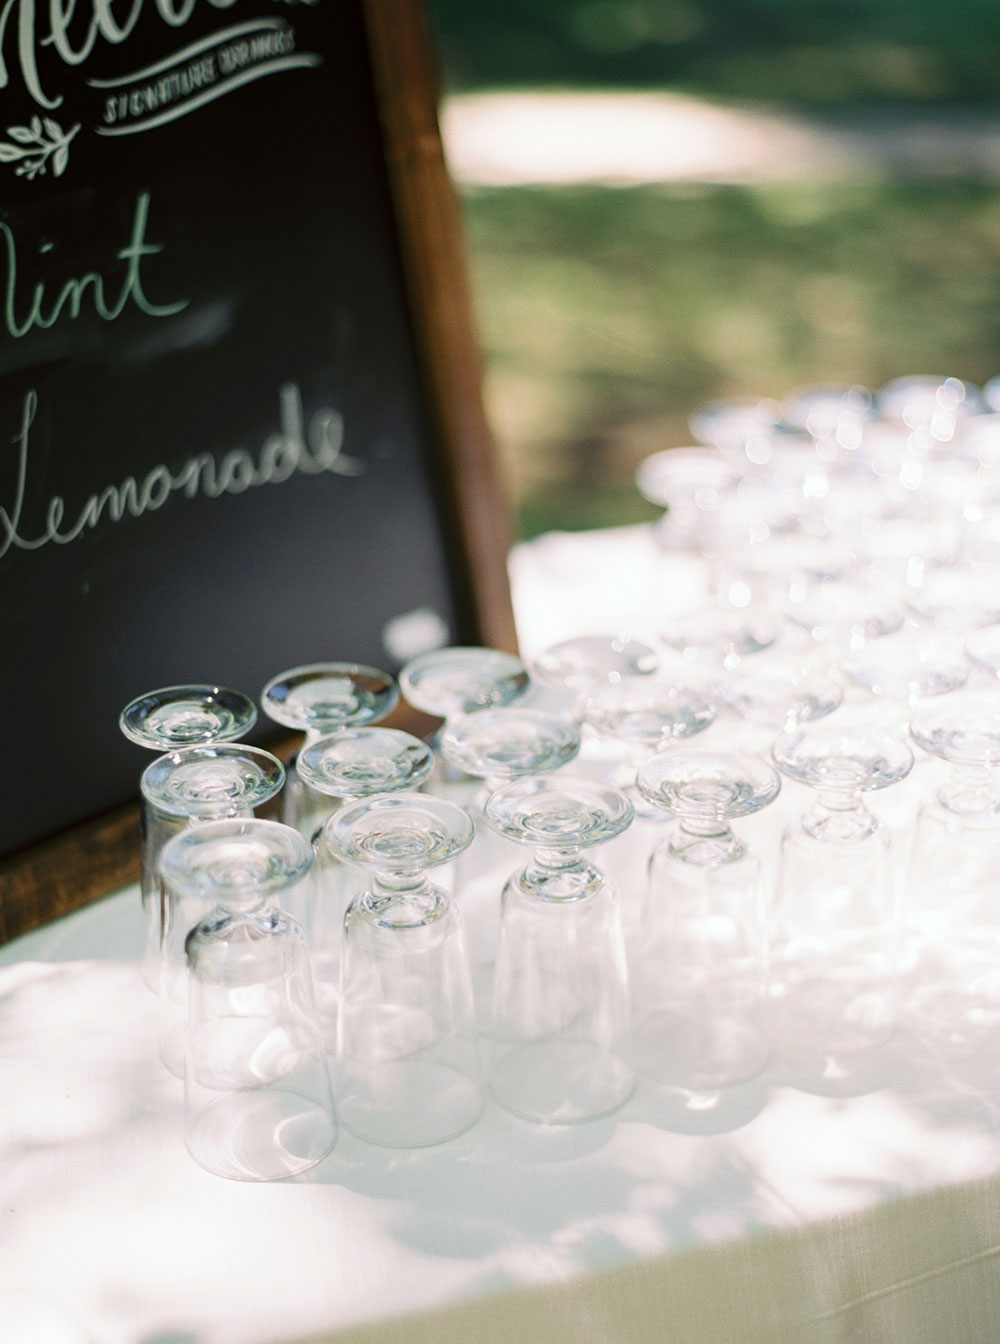 kurtz-orchards-wedding-gracewood-estate-niagara-on-the-lake-photo-by-katie-nicolle-photography-0015.JPG